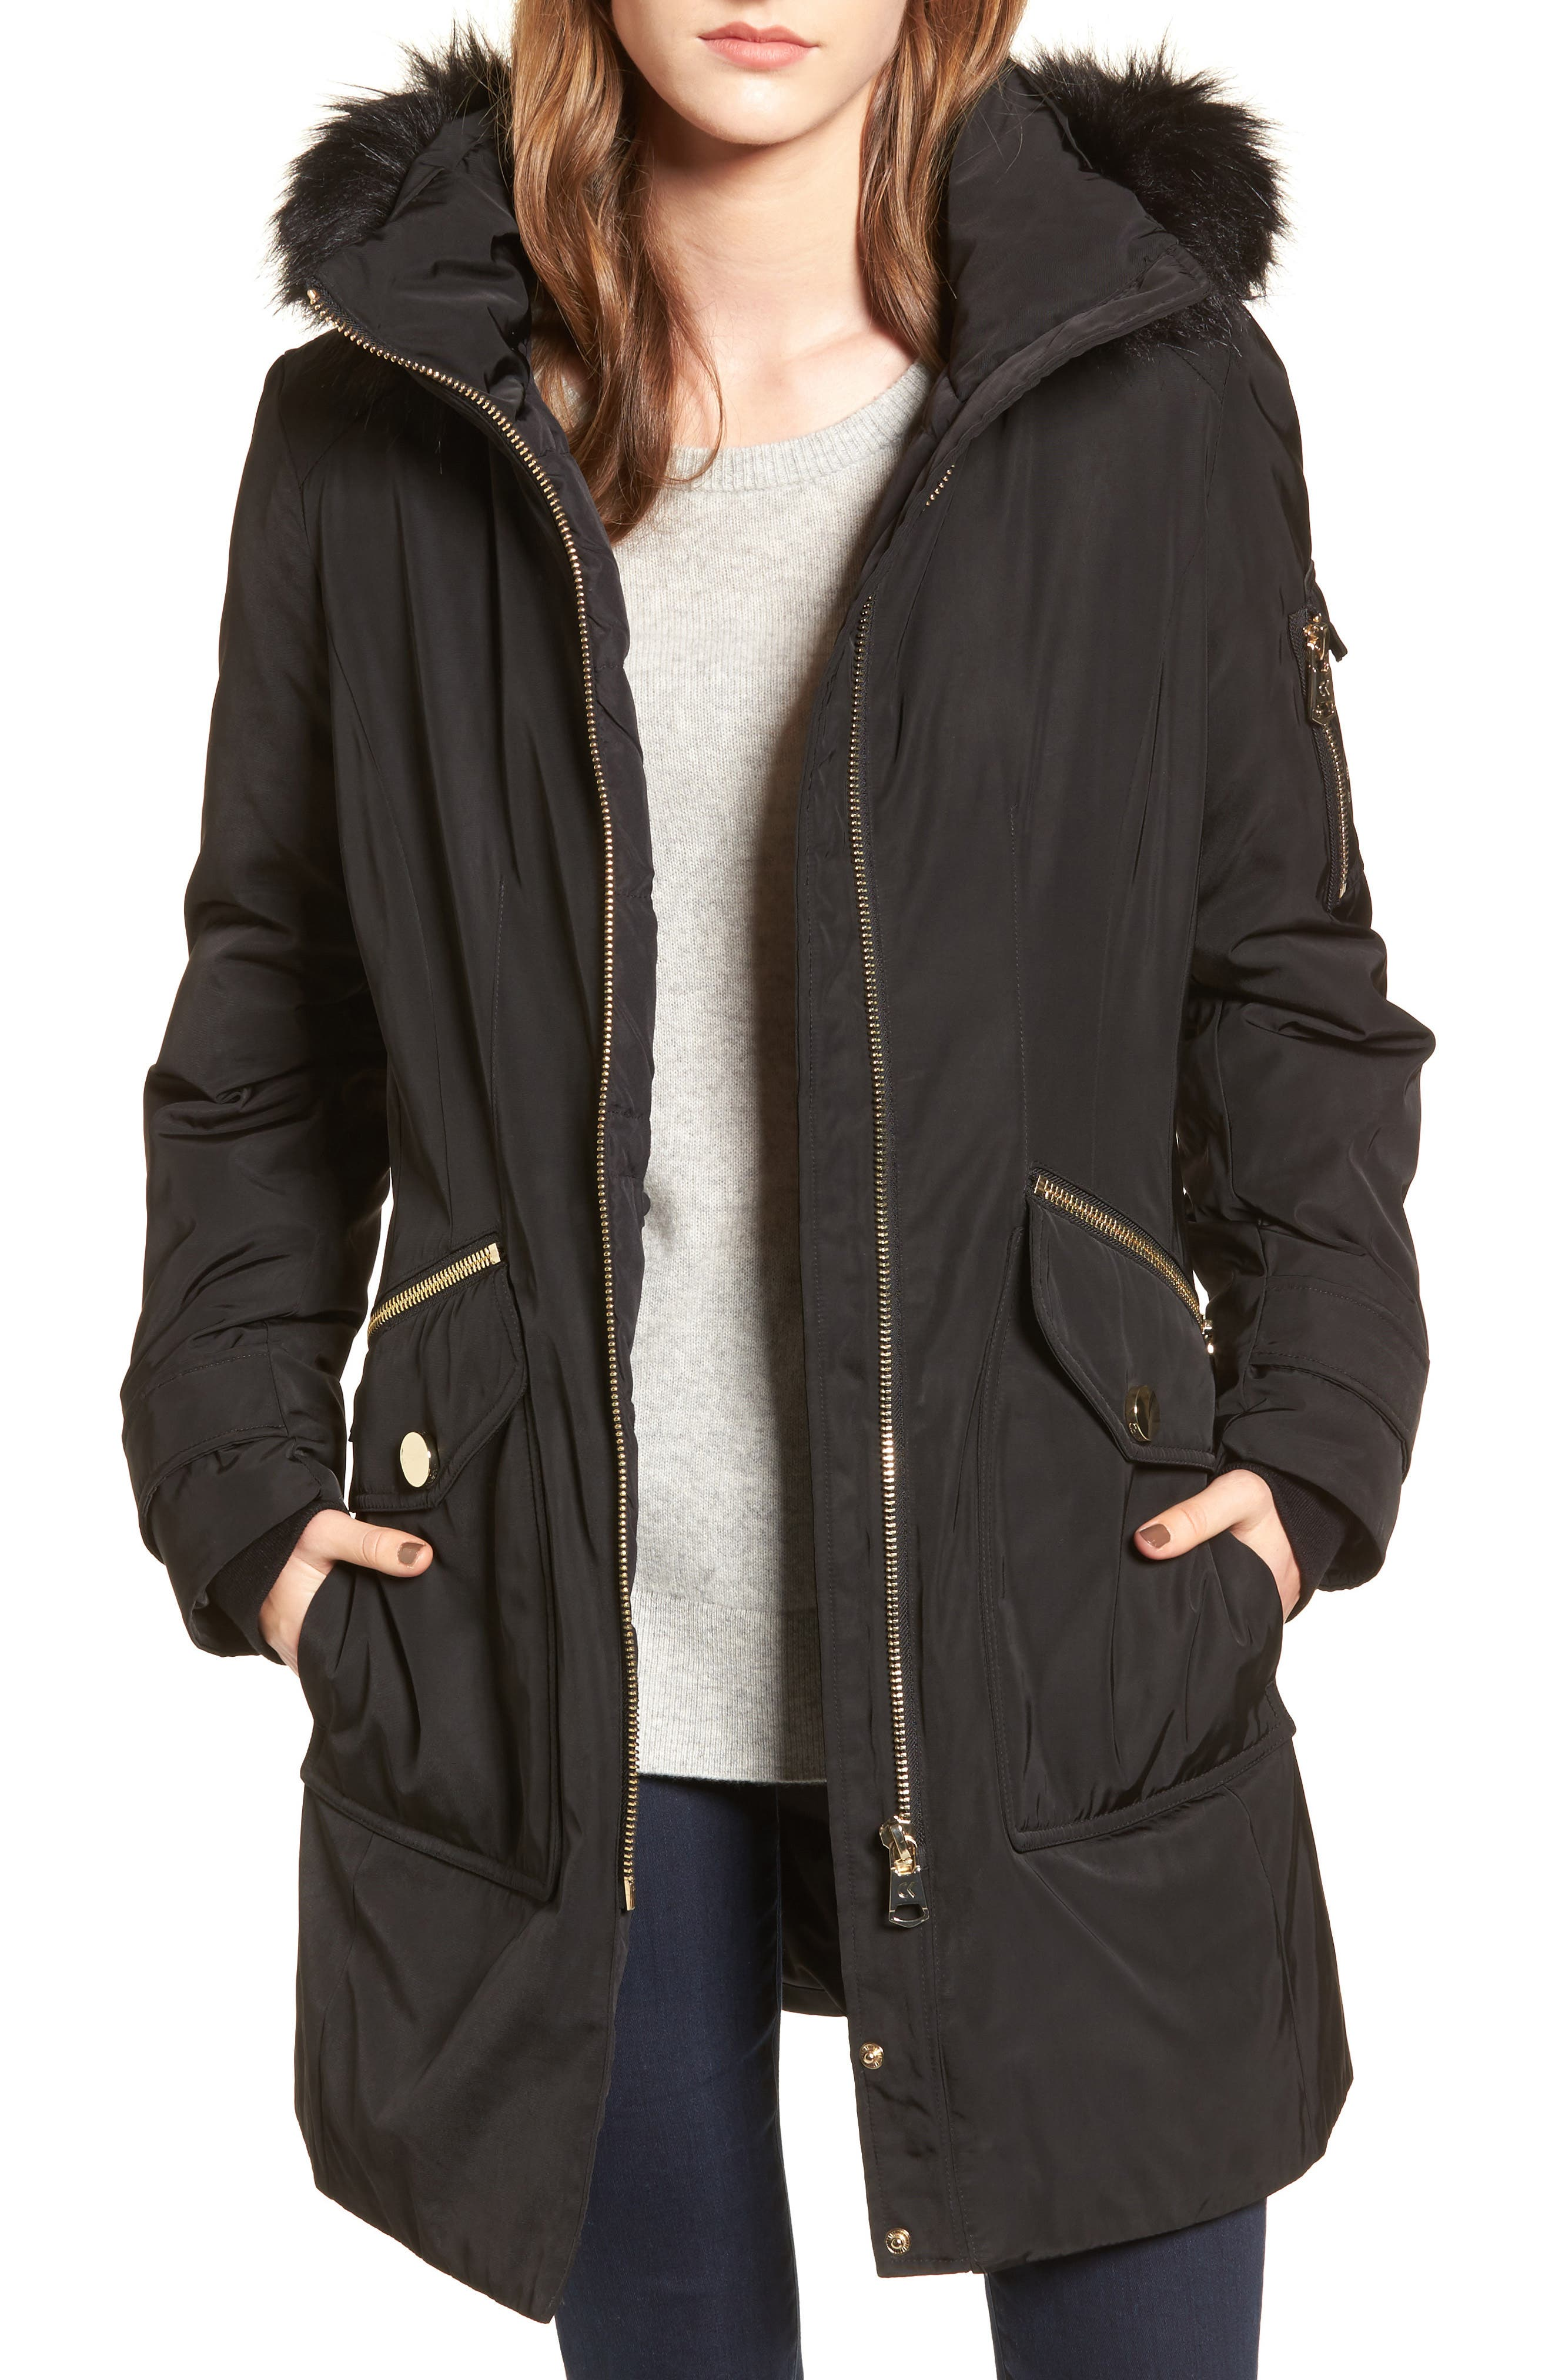 Calvien Klein Hooded Down Parka with Removable Faux Fur Collar,                             Main thumbnail 1, color,                             001